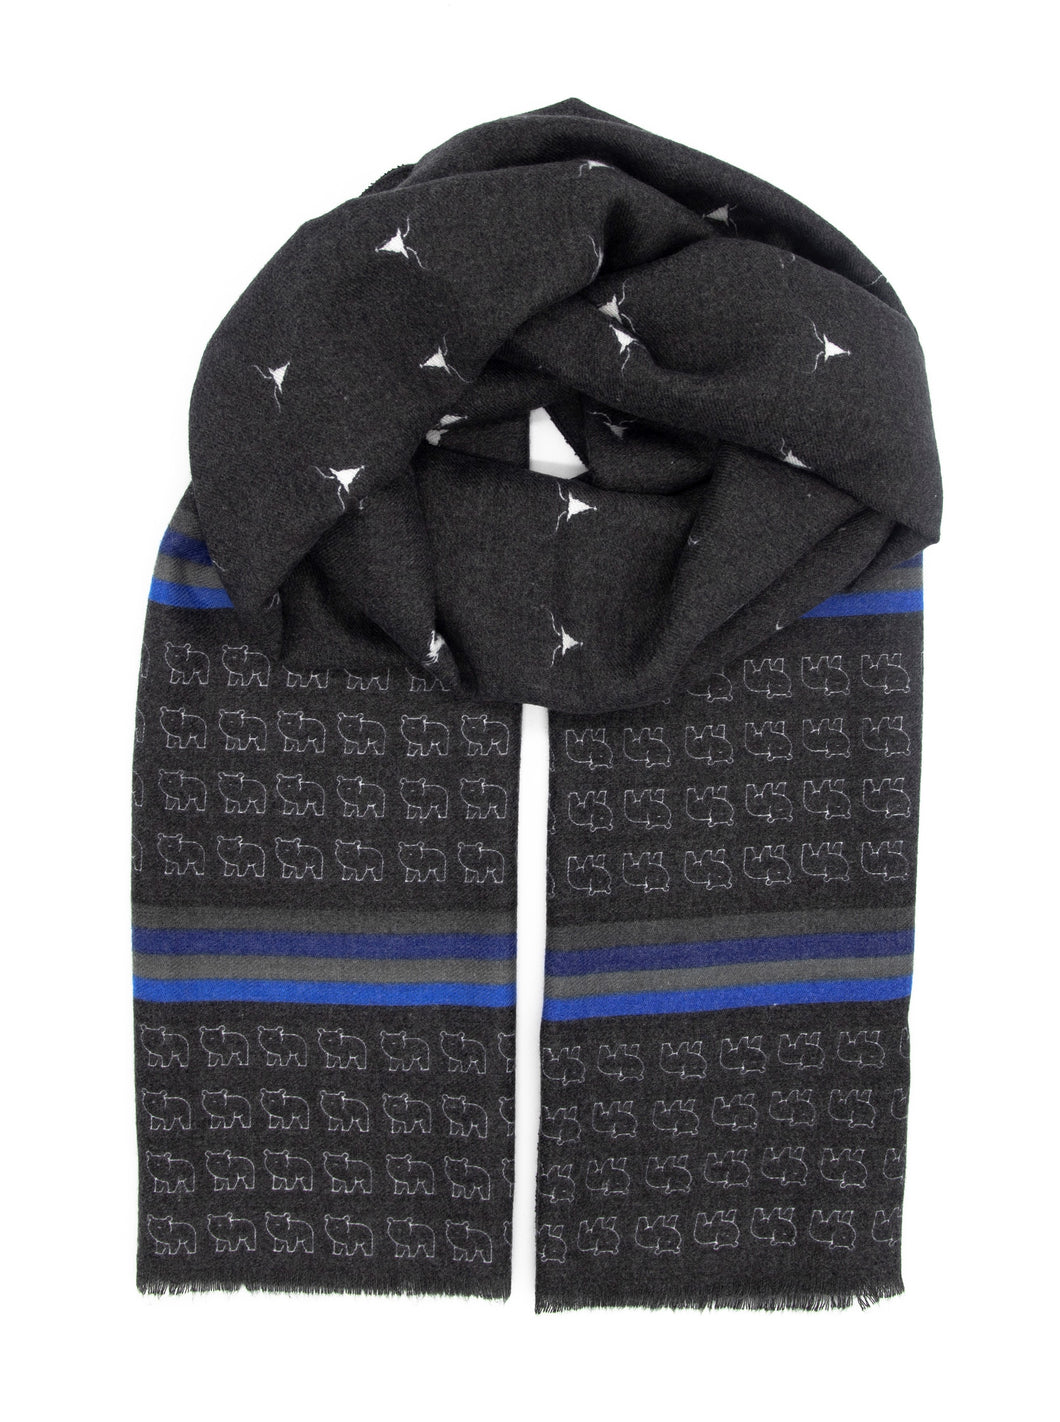 Black scarf. Always fashionable and elegant black scarf with blue and grey stripes designed with make reindeers and bears patterns. Made of cosy and warm materials which makes it a perfect fit for the Winter, Autumn and Spring season. It will also keep you warm on a chilly day in Summer so you can simply wear it all year round! Scarves for women. Scarves for men.